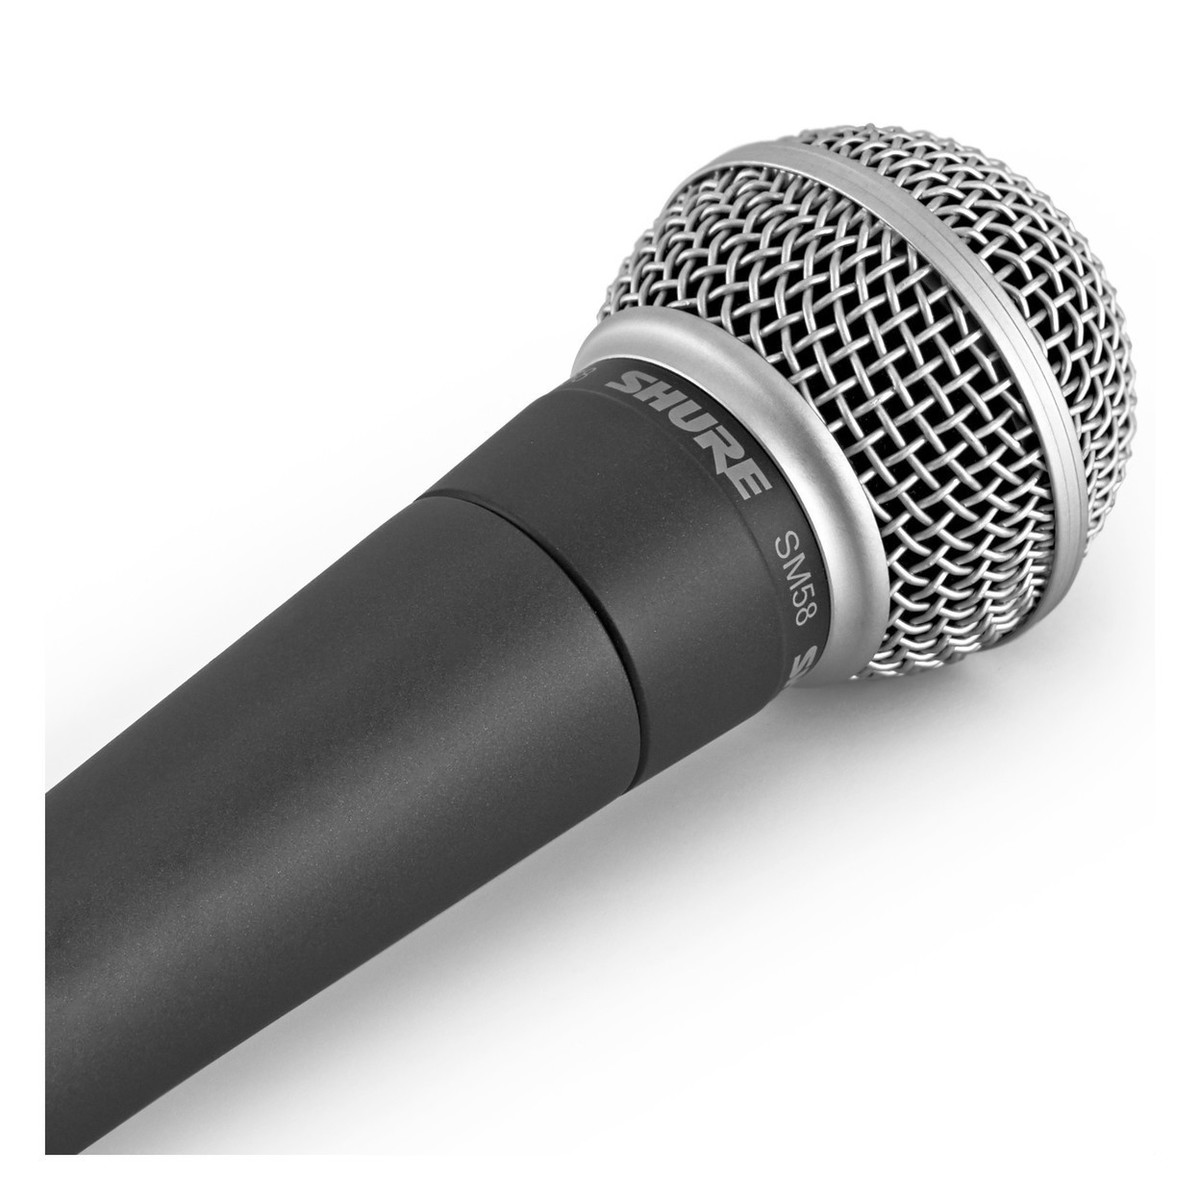 Shure Sm58 Price : shure sm58 dynamic vocal mic with stand and cable at gear4music ~ Vivirlamusica.com Haus und Dekorationen